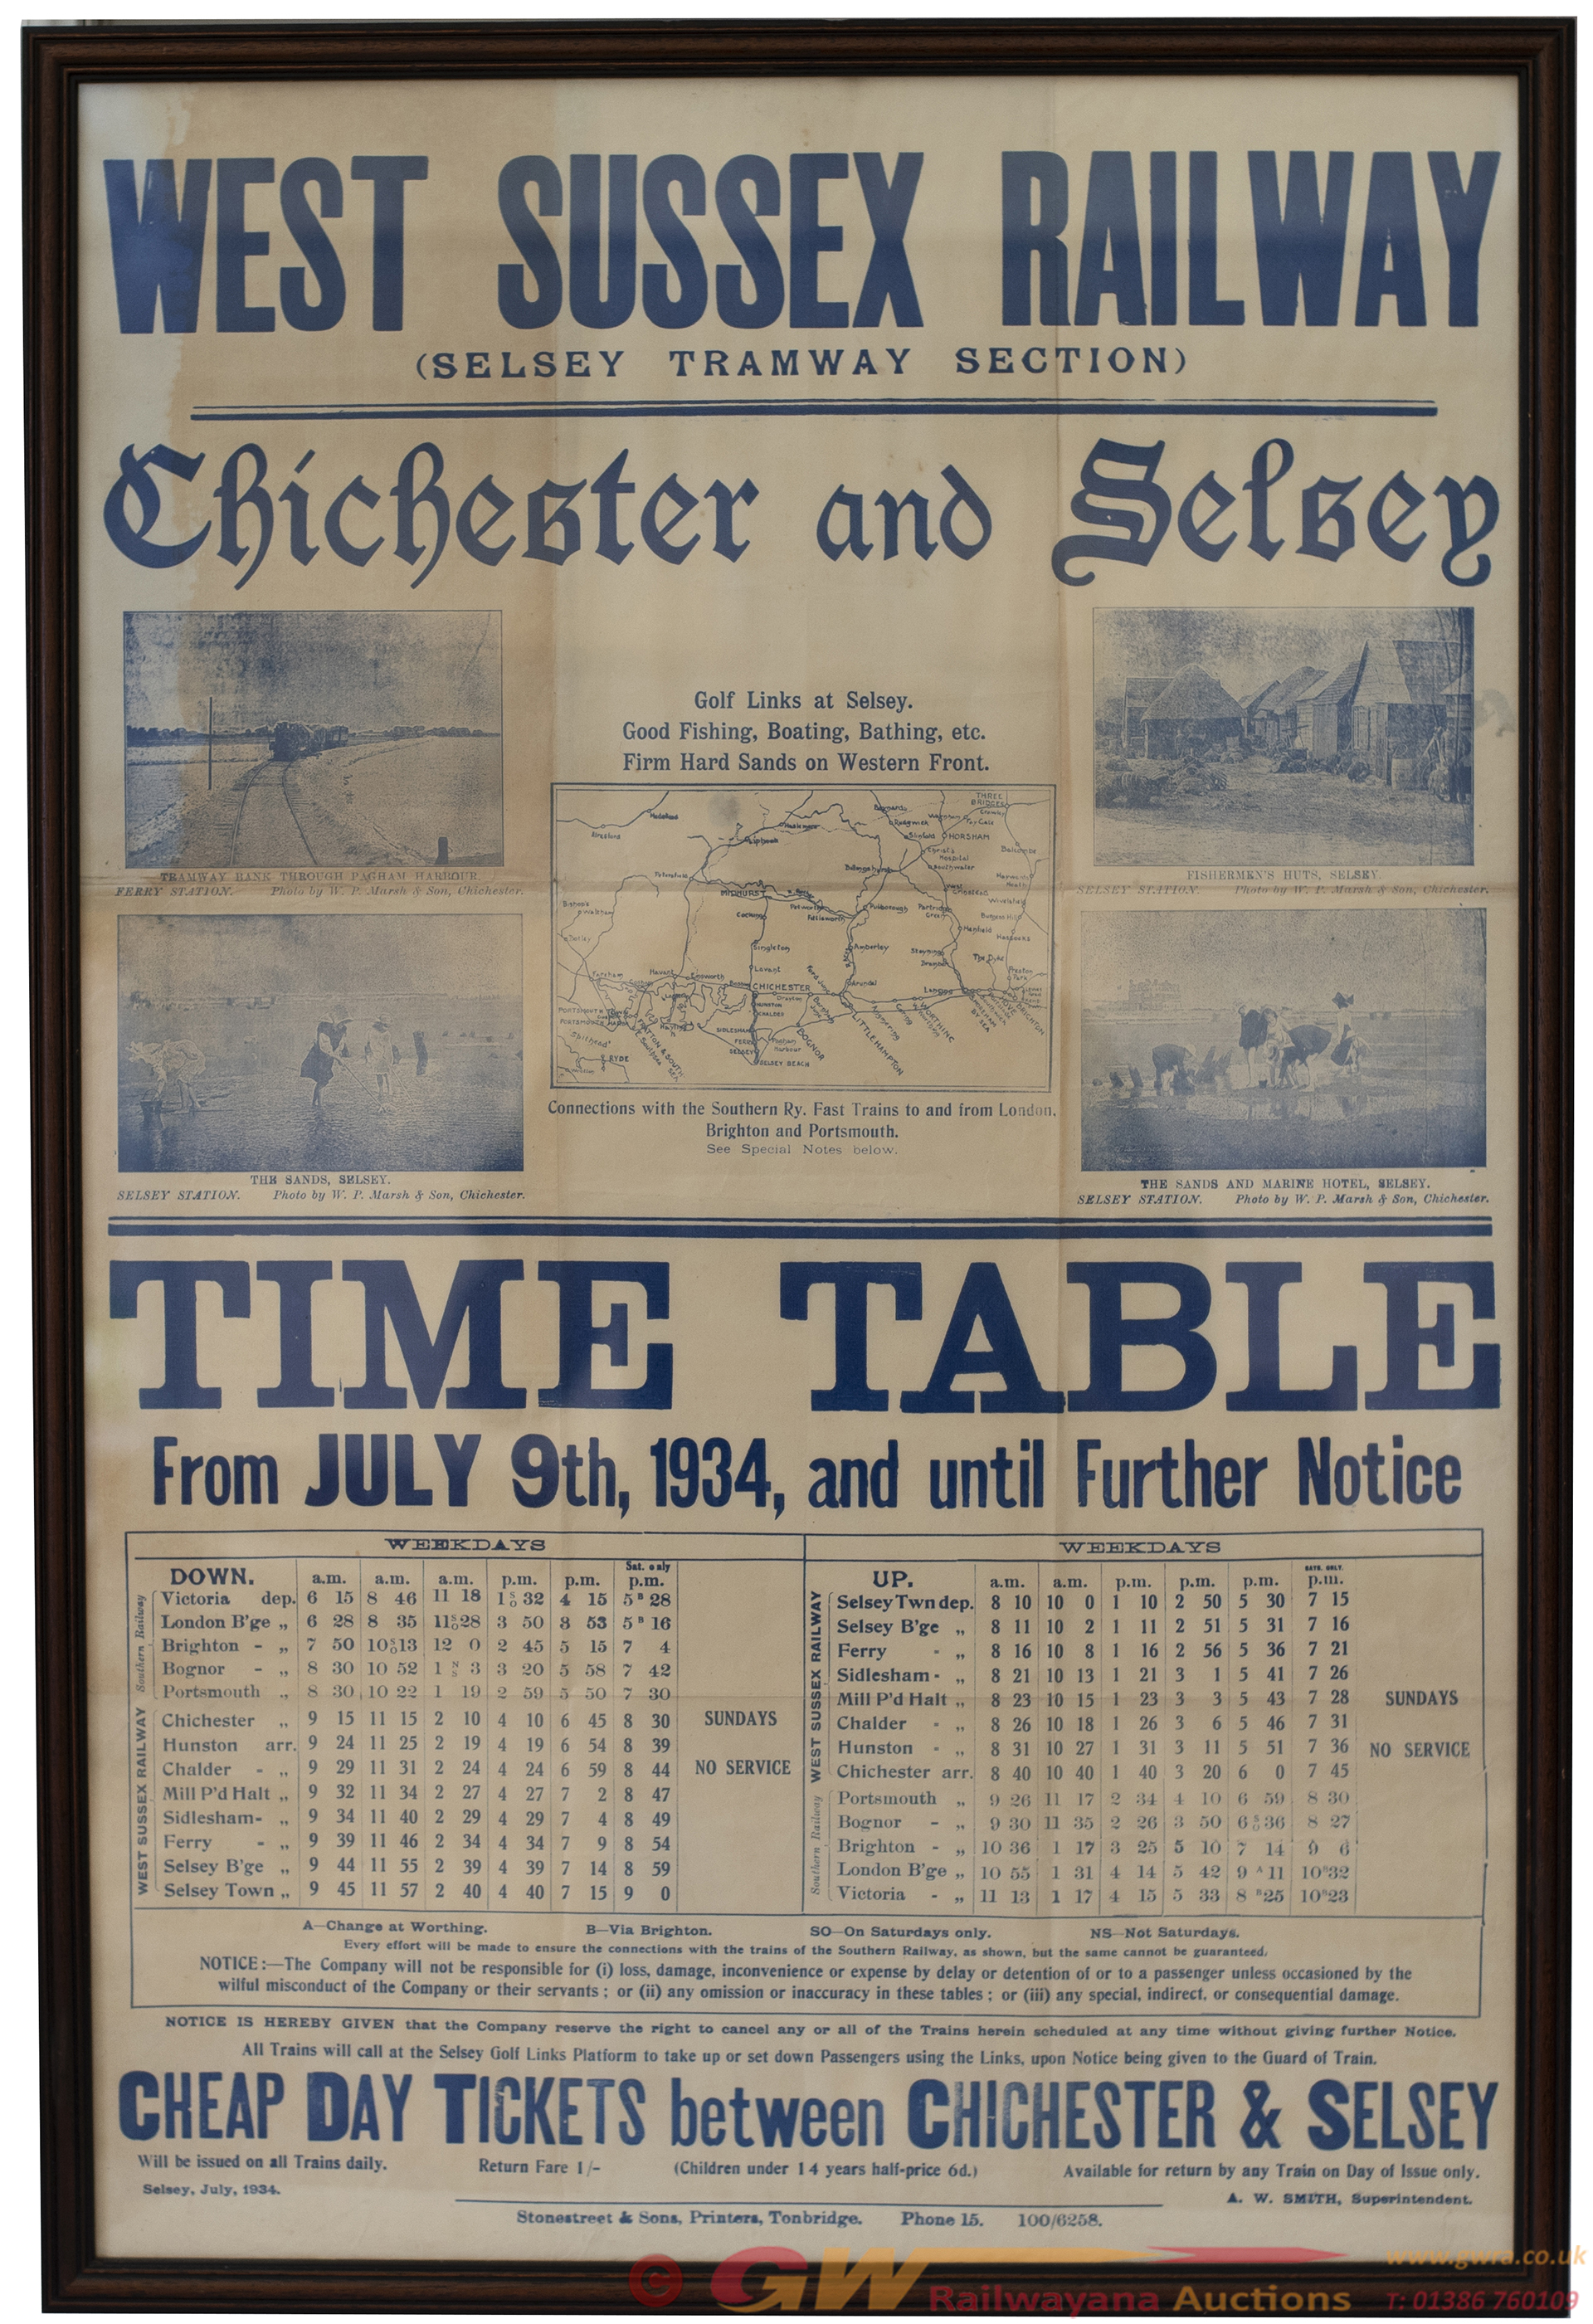 Poster WEST SUSSEX RAILWAY (SELSEY TRAMWAY